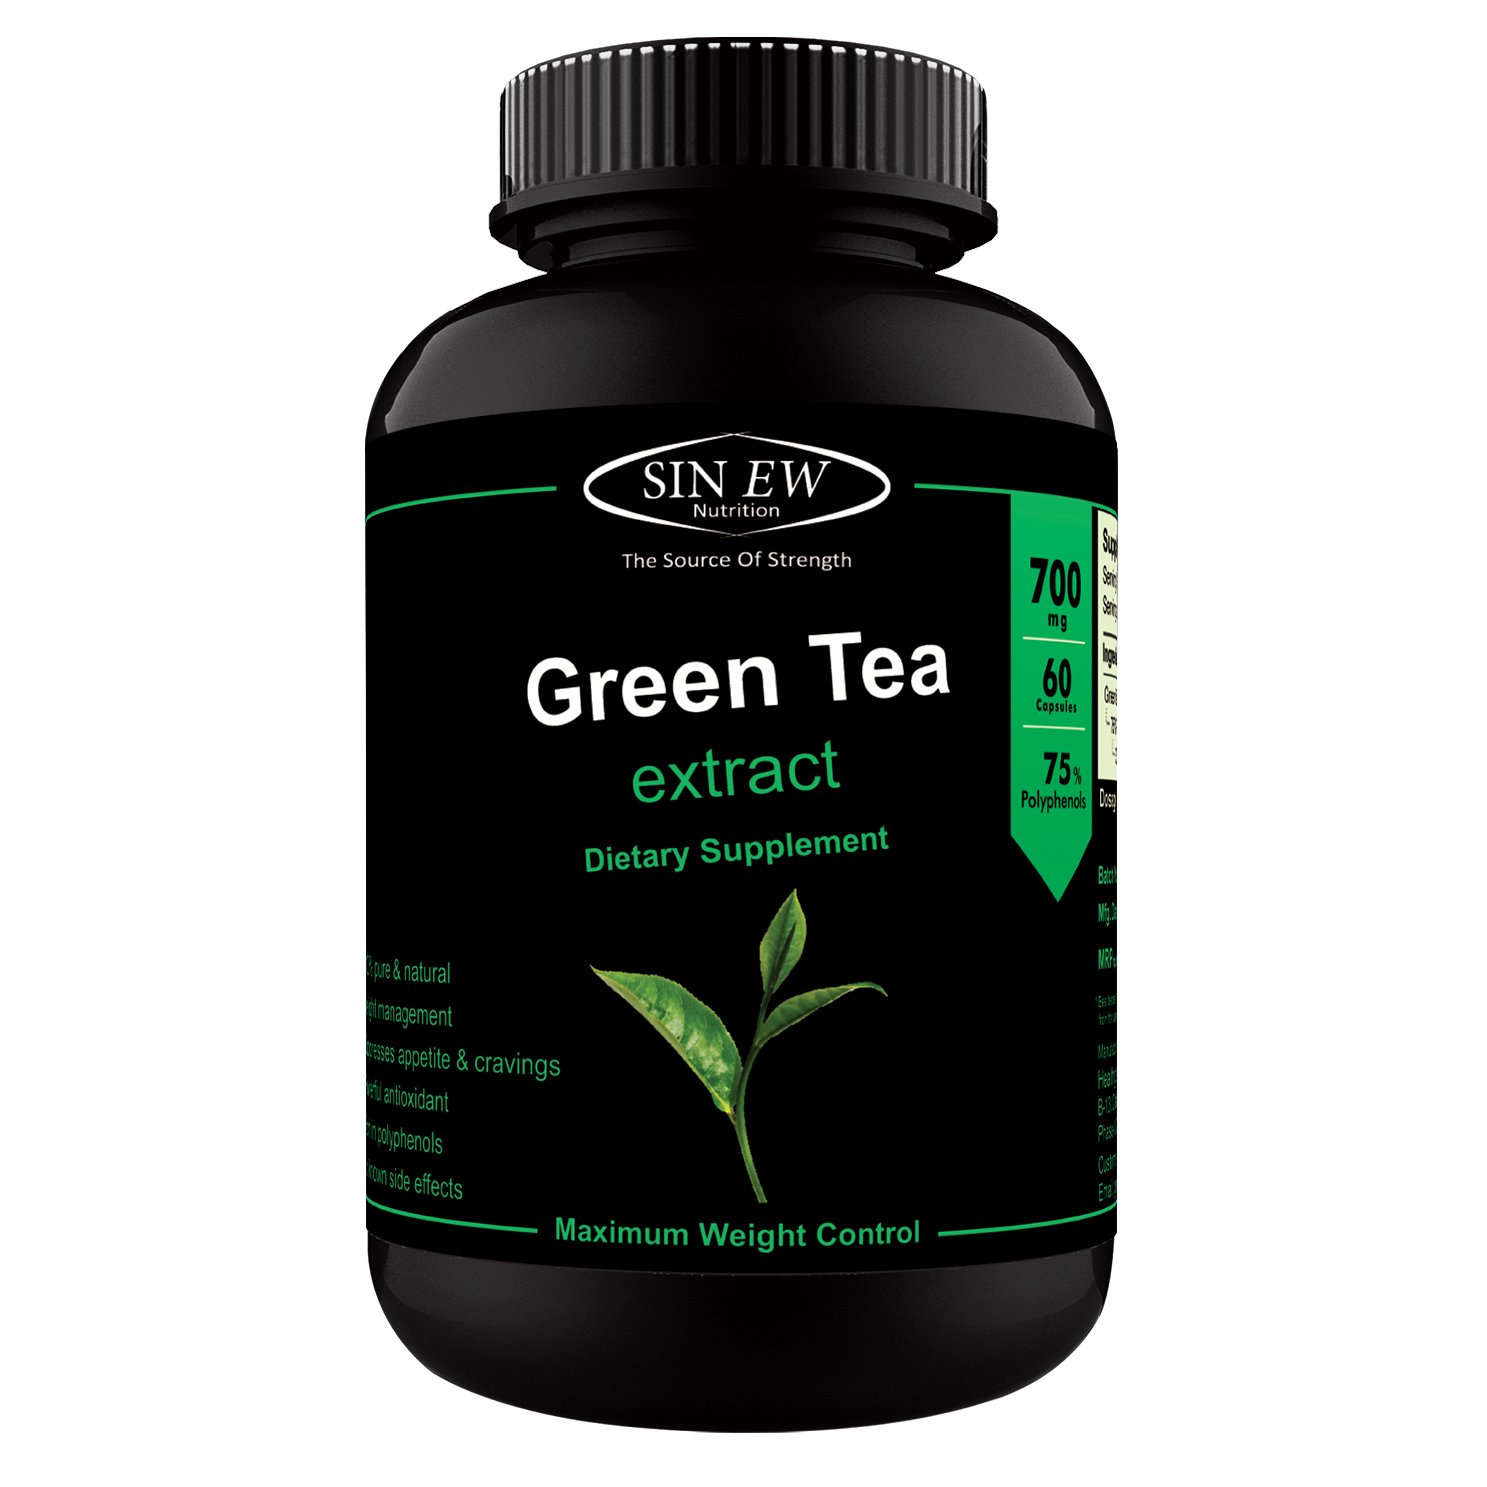 Sinew Nutrition Green Tea Extract 700 mg (60 Pure Veg Capsules), 100% Pure & Natural Weight Management & Appetite Suppressant Supplement product image